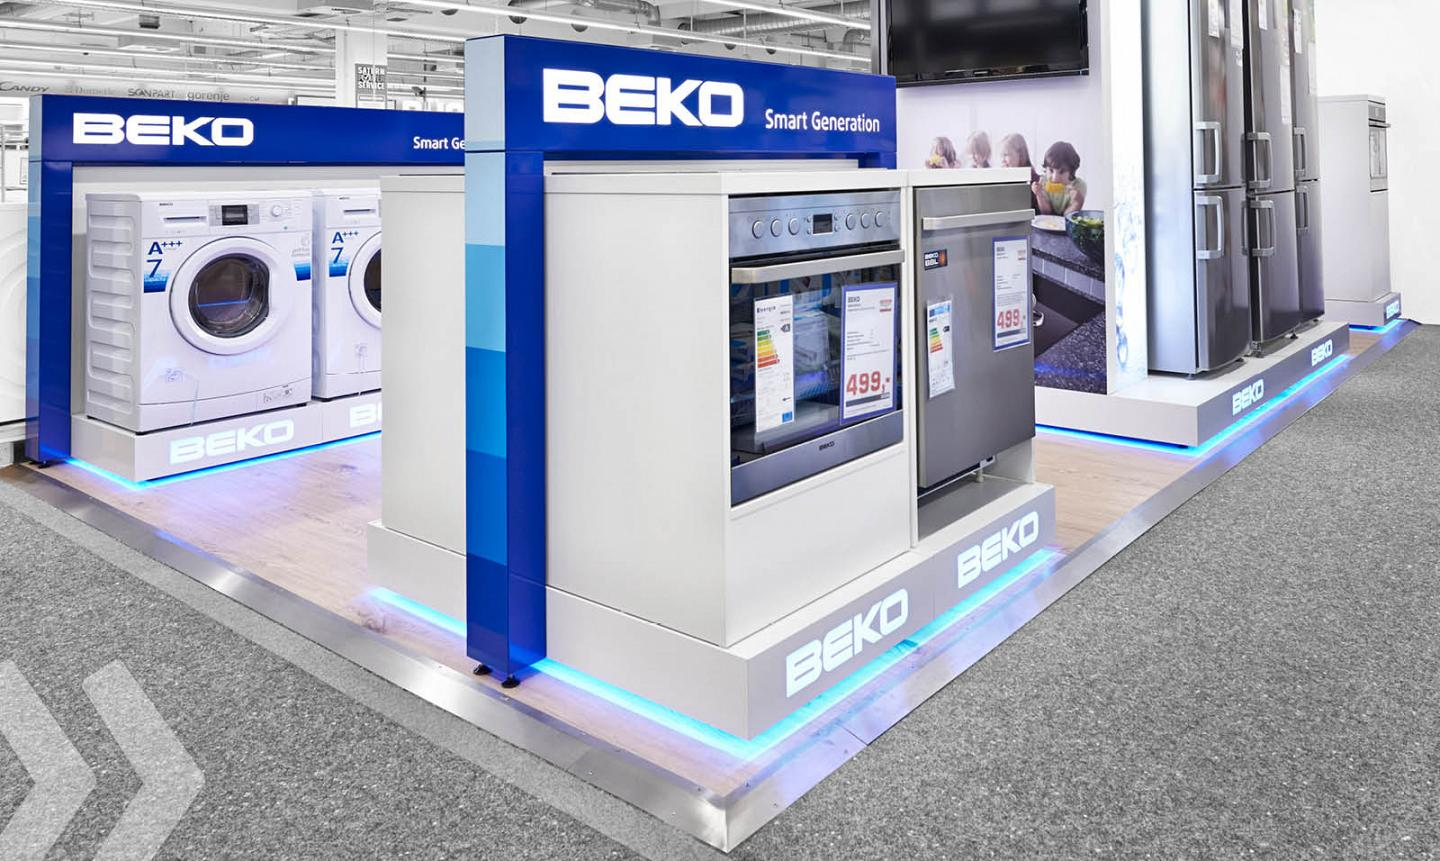 beko 02 shop in shop shop in shop systeme retail design